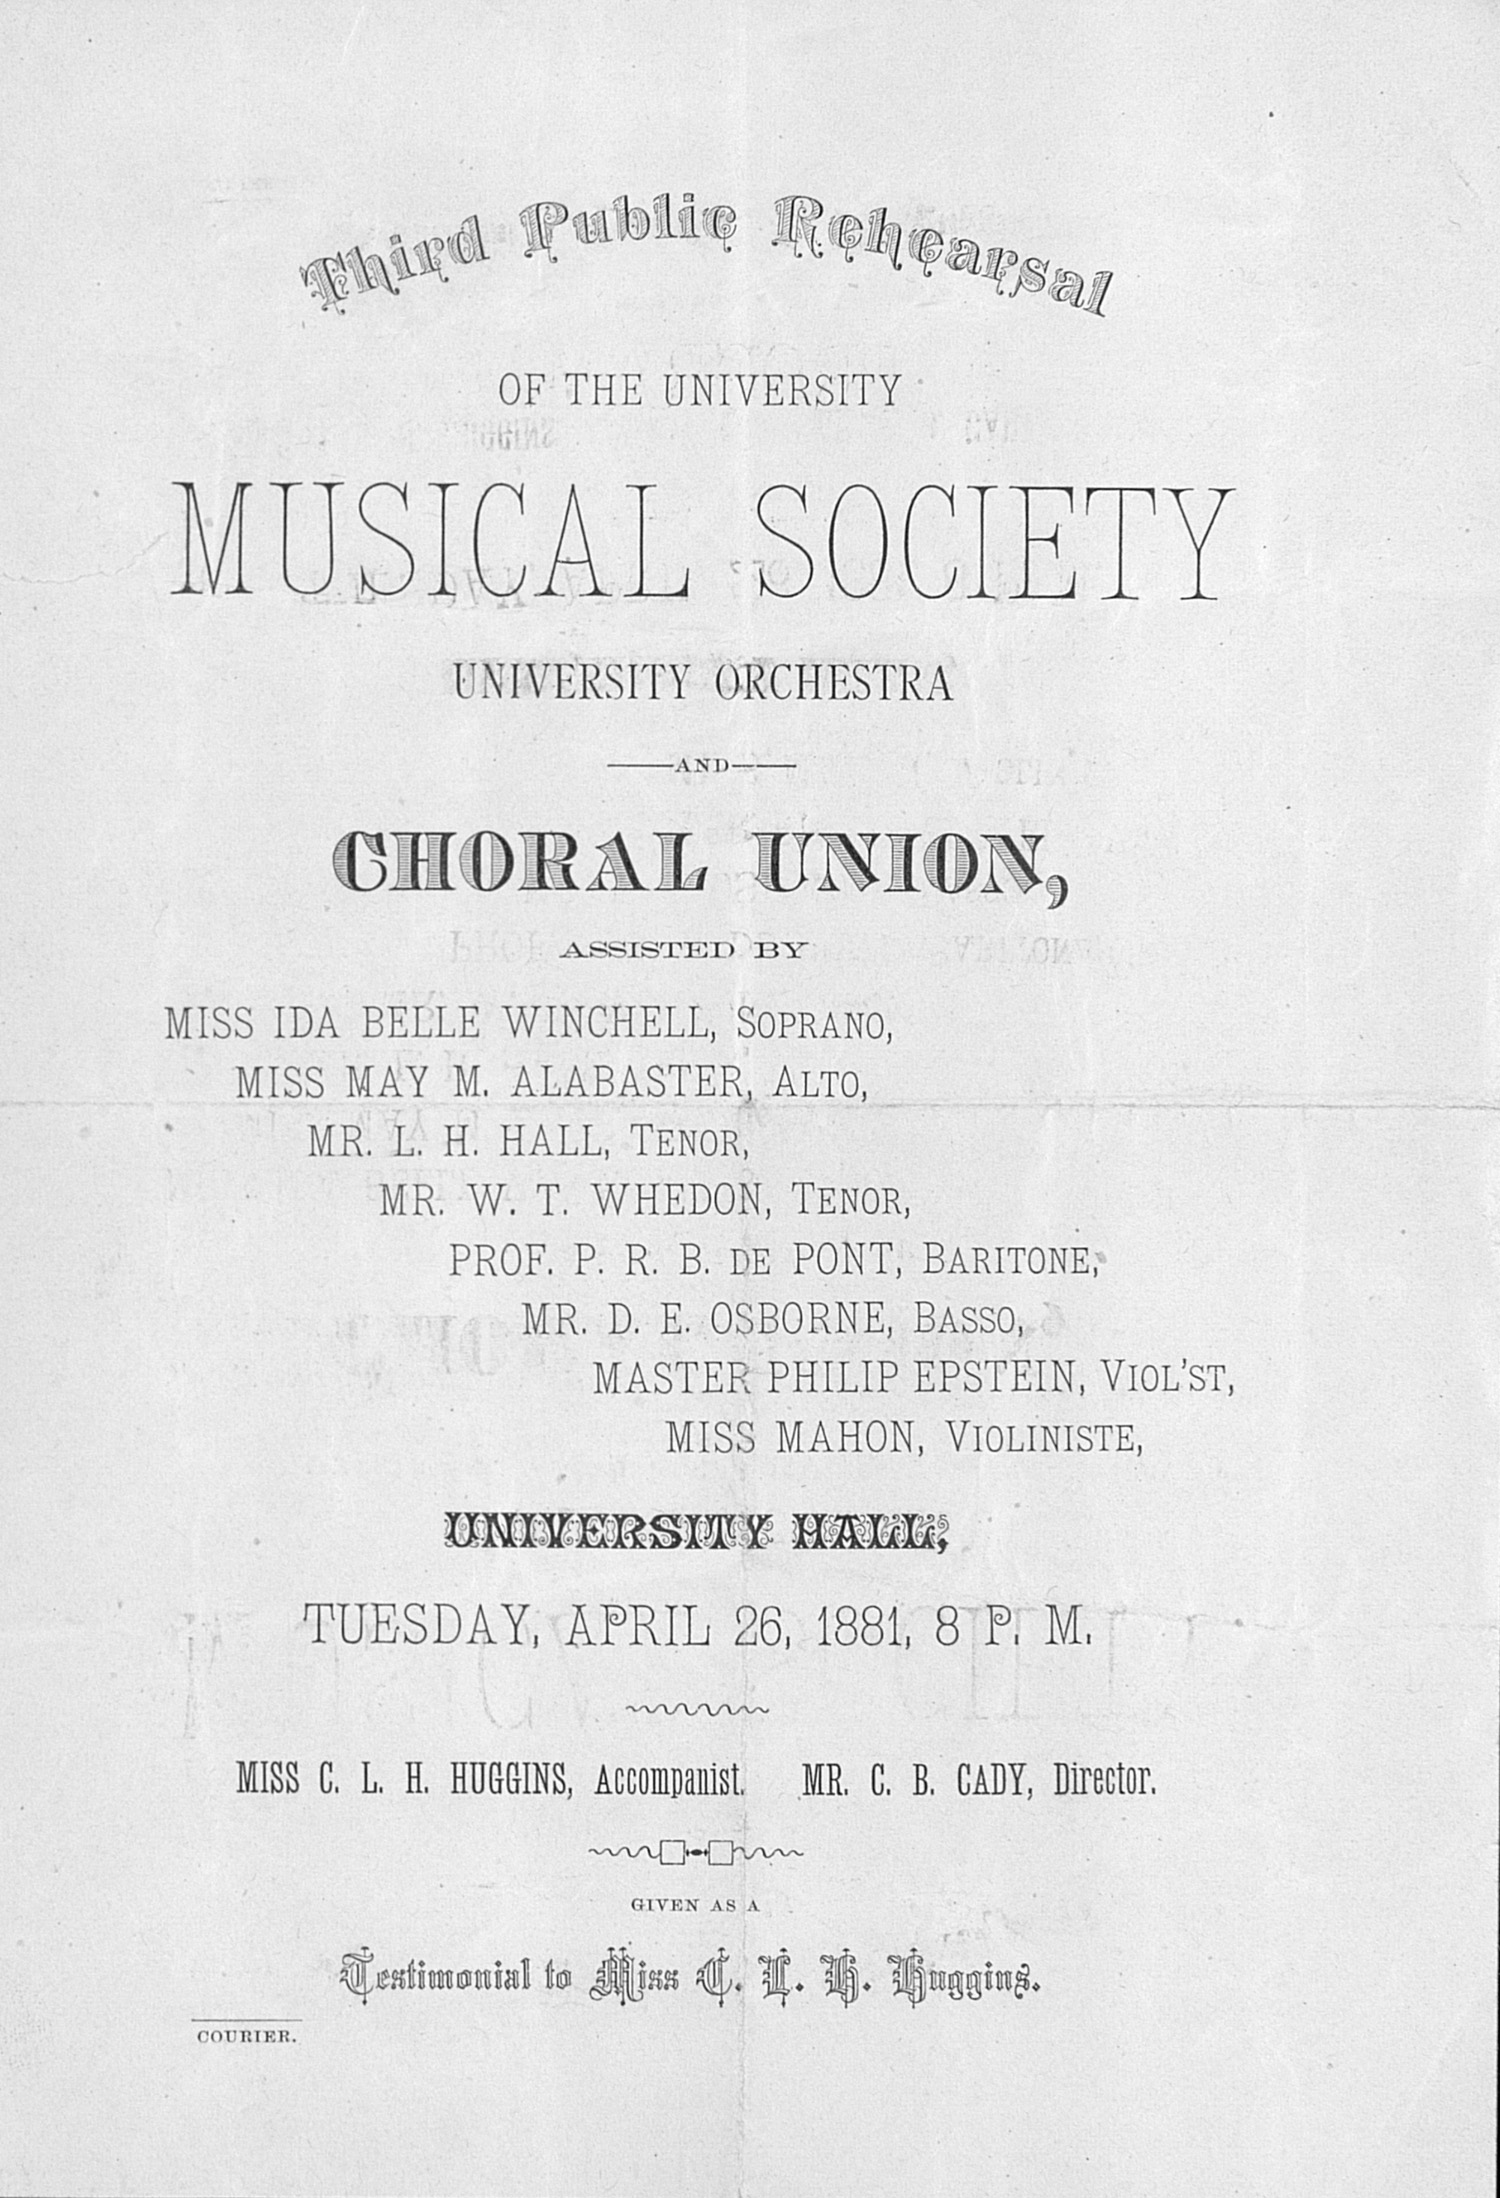 UMS Concert Program, April 26, 1881: Third Public Rehearsal -- Choral Union image